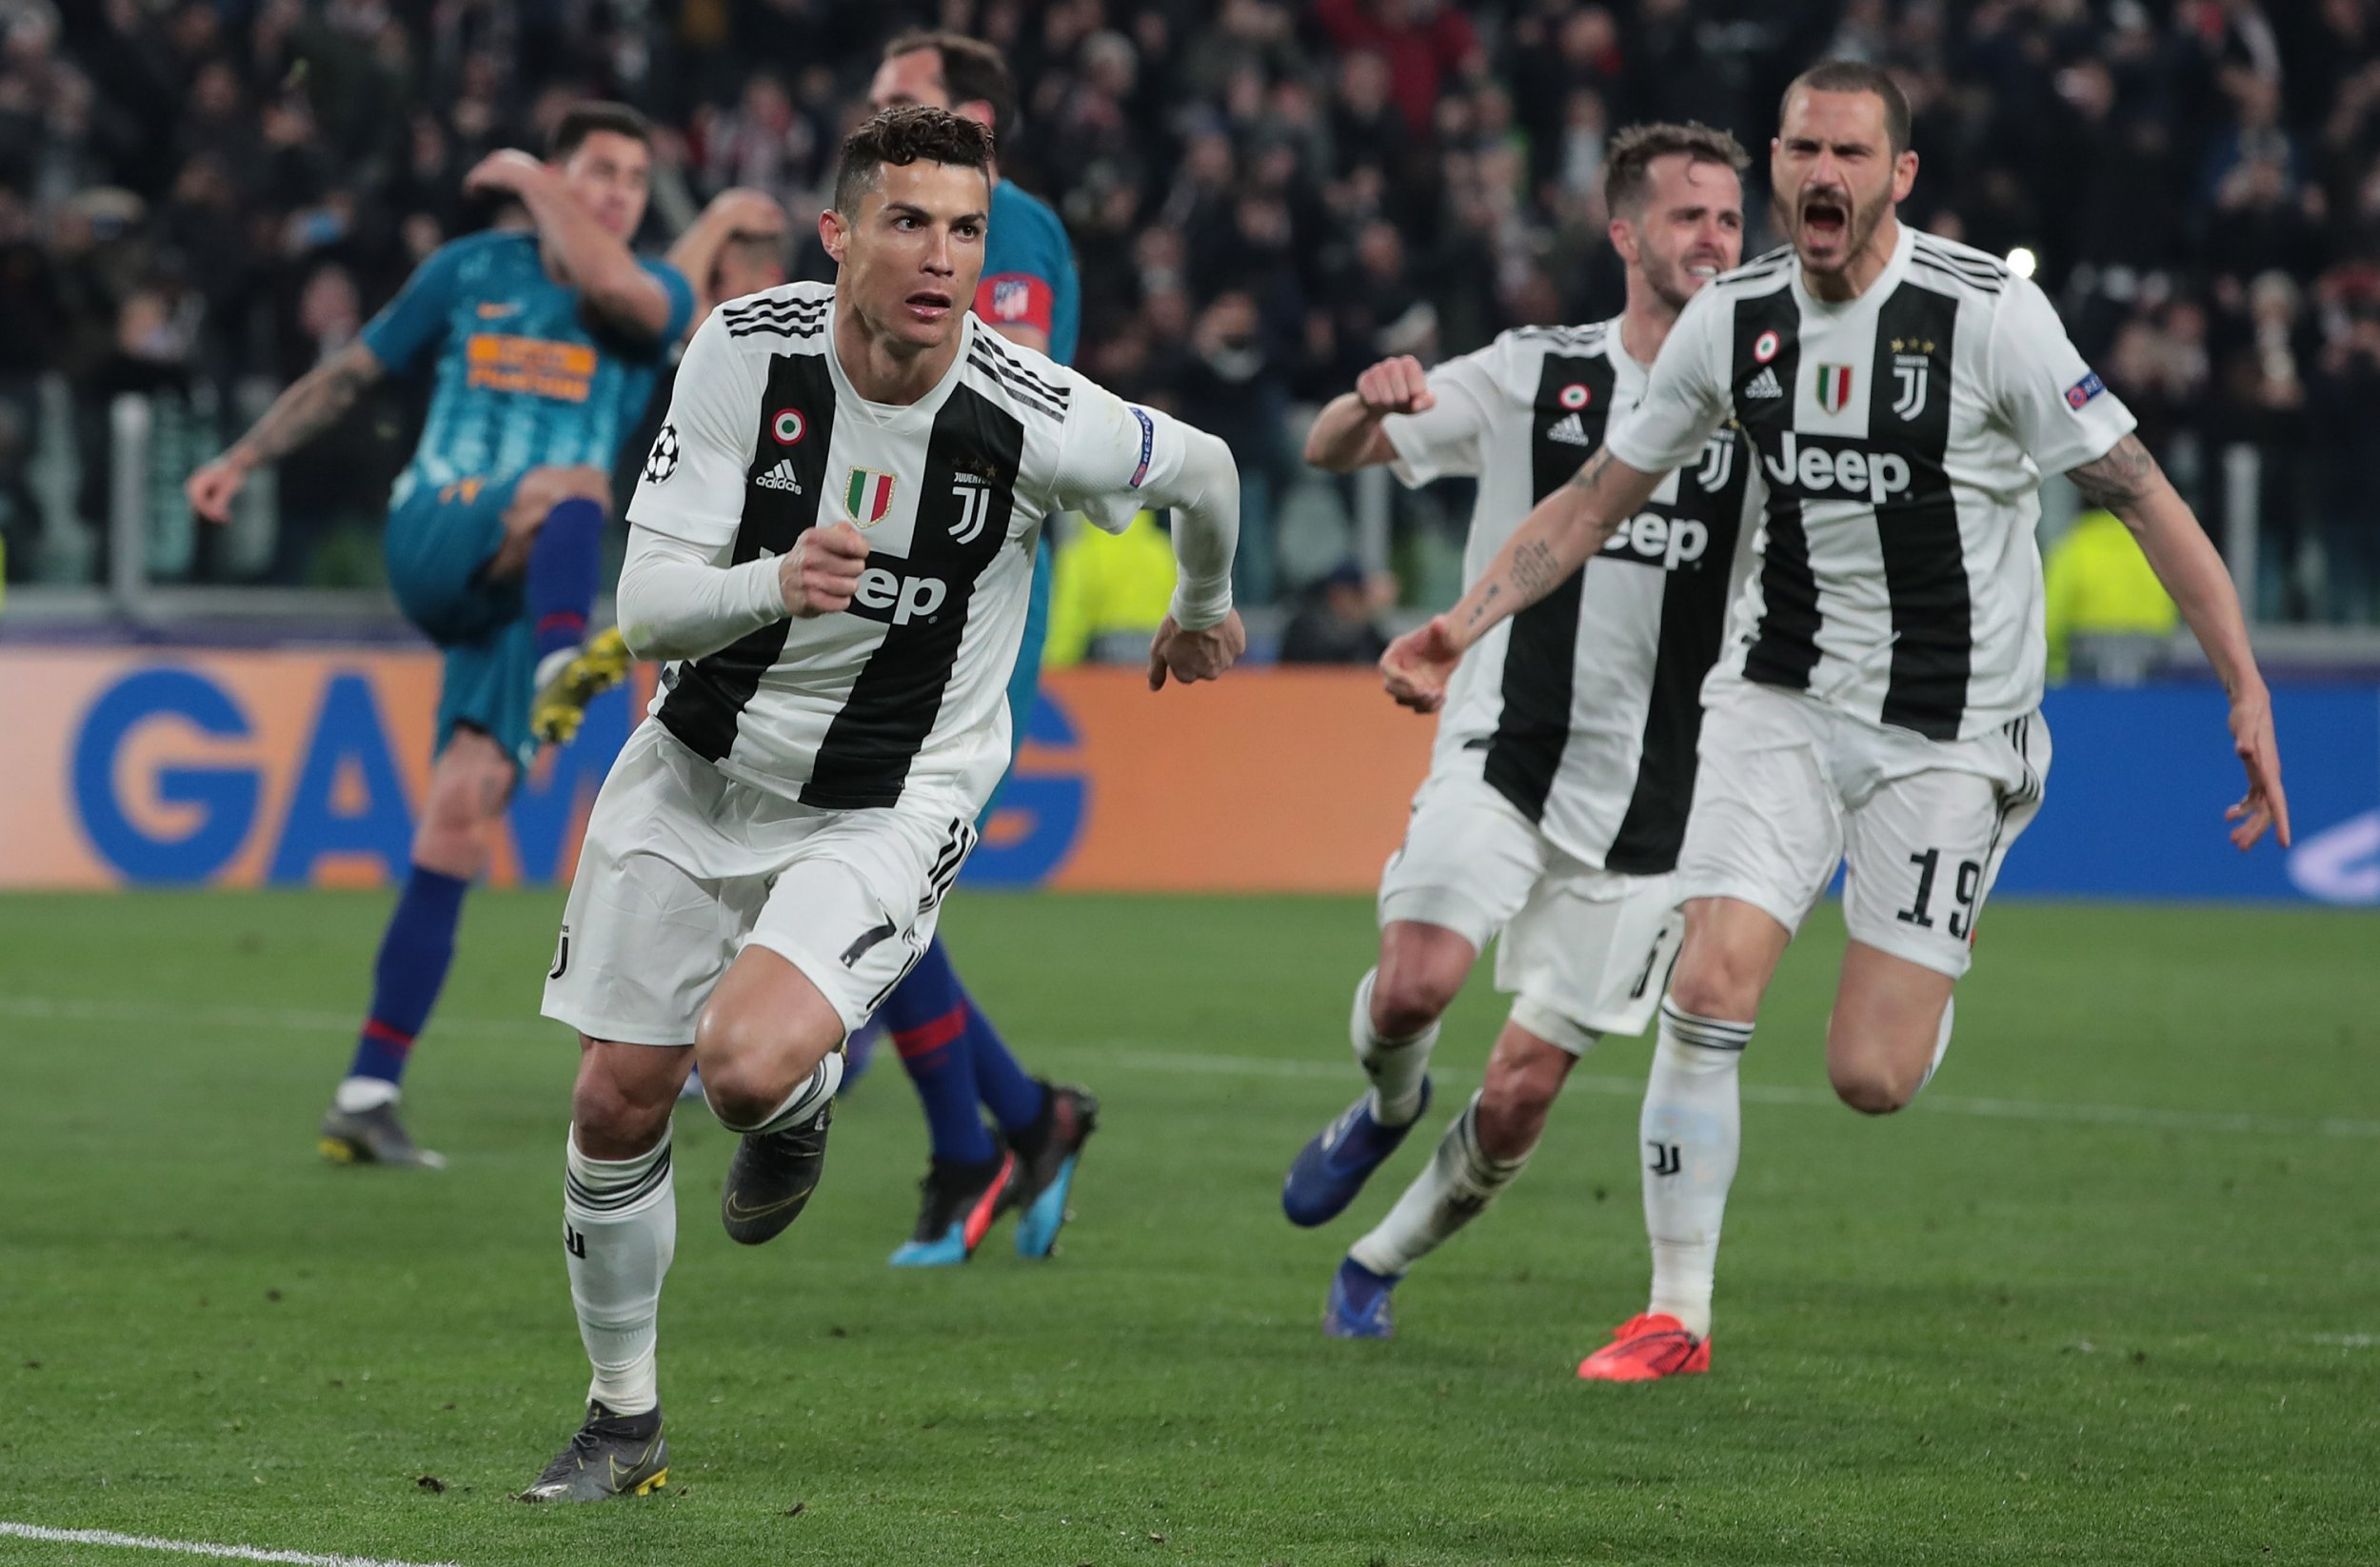 TURIN, ITALY - MARCH 12: Cristiano Ronaldo of Juventus celebrates his third goal during the UEFA Champions League Round of 16 Second Leg match between Juventus and Club de Atletico Madrid at Allianz Stadium on March 12, 2019 in Turin, Italy. (Photo by Emilio Andreoli/Getty Images)